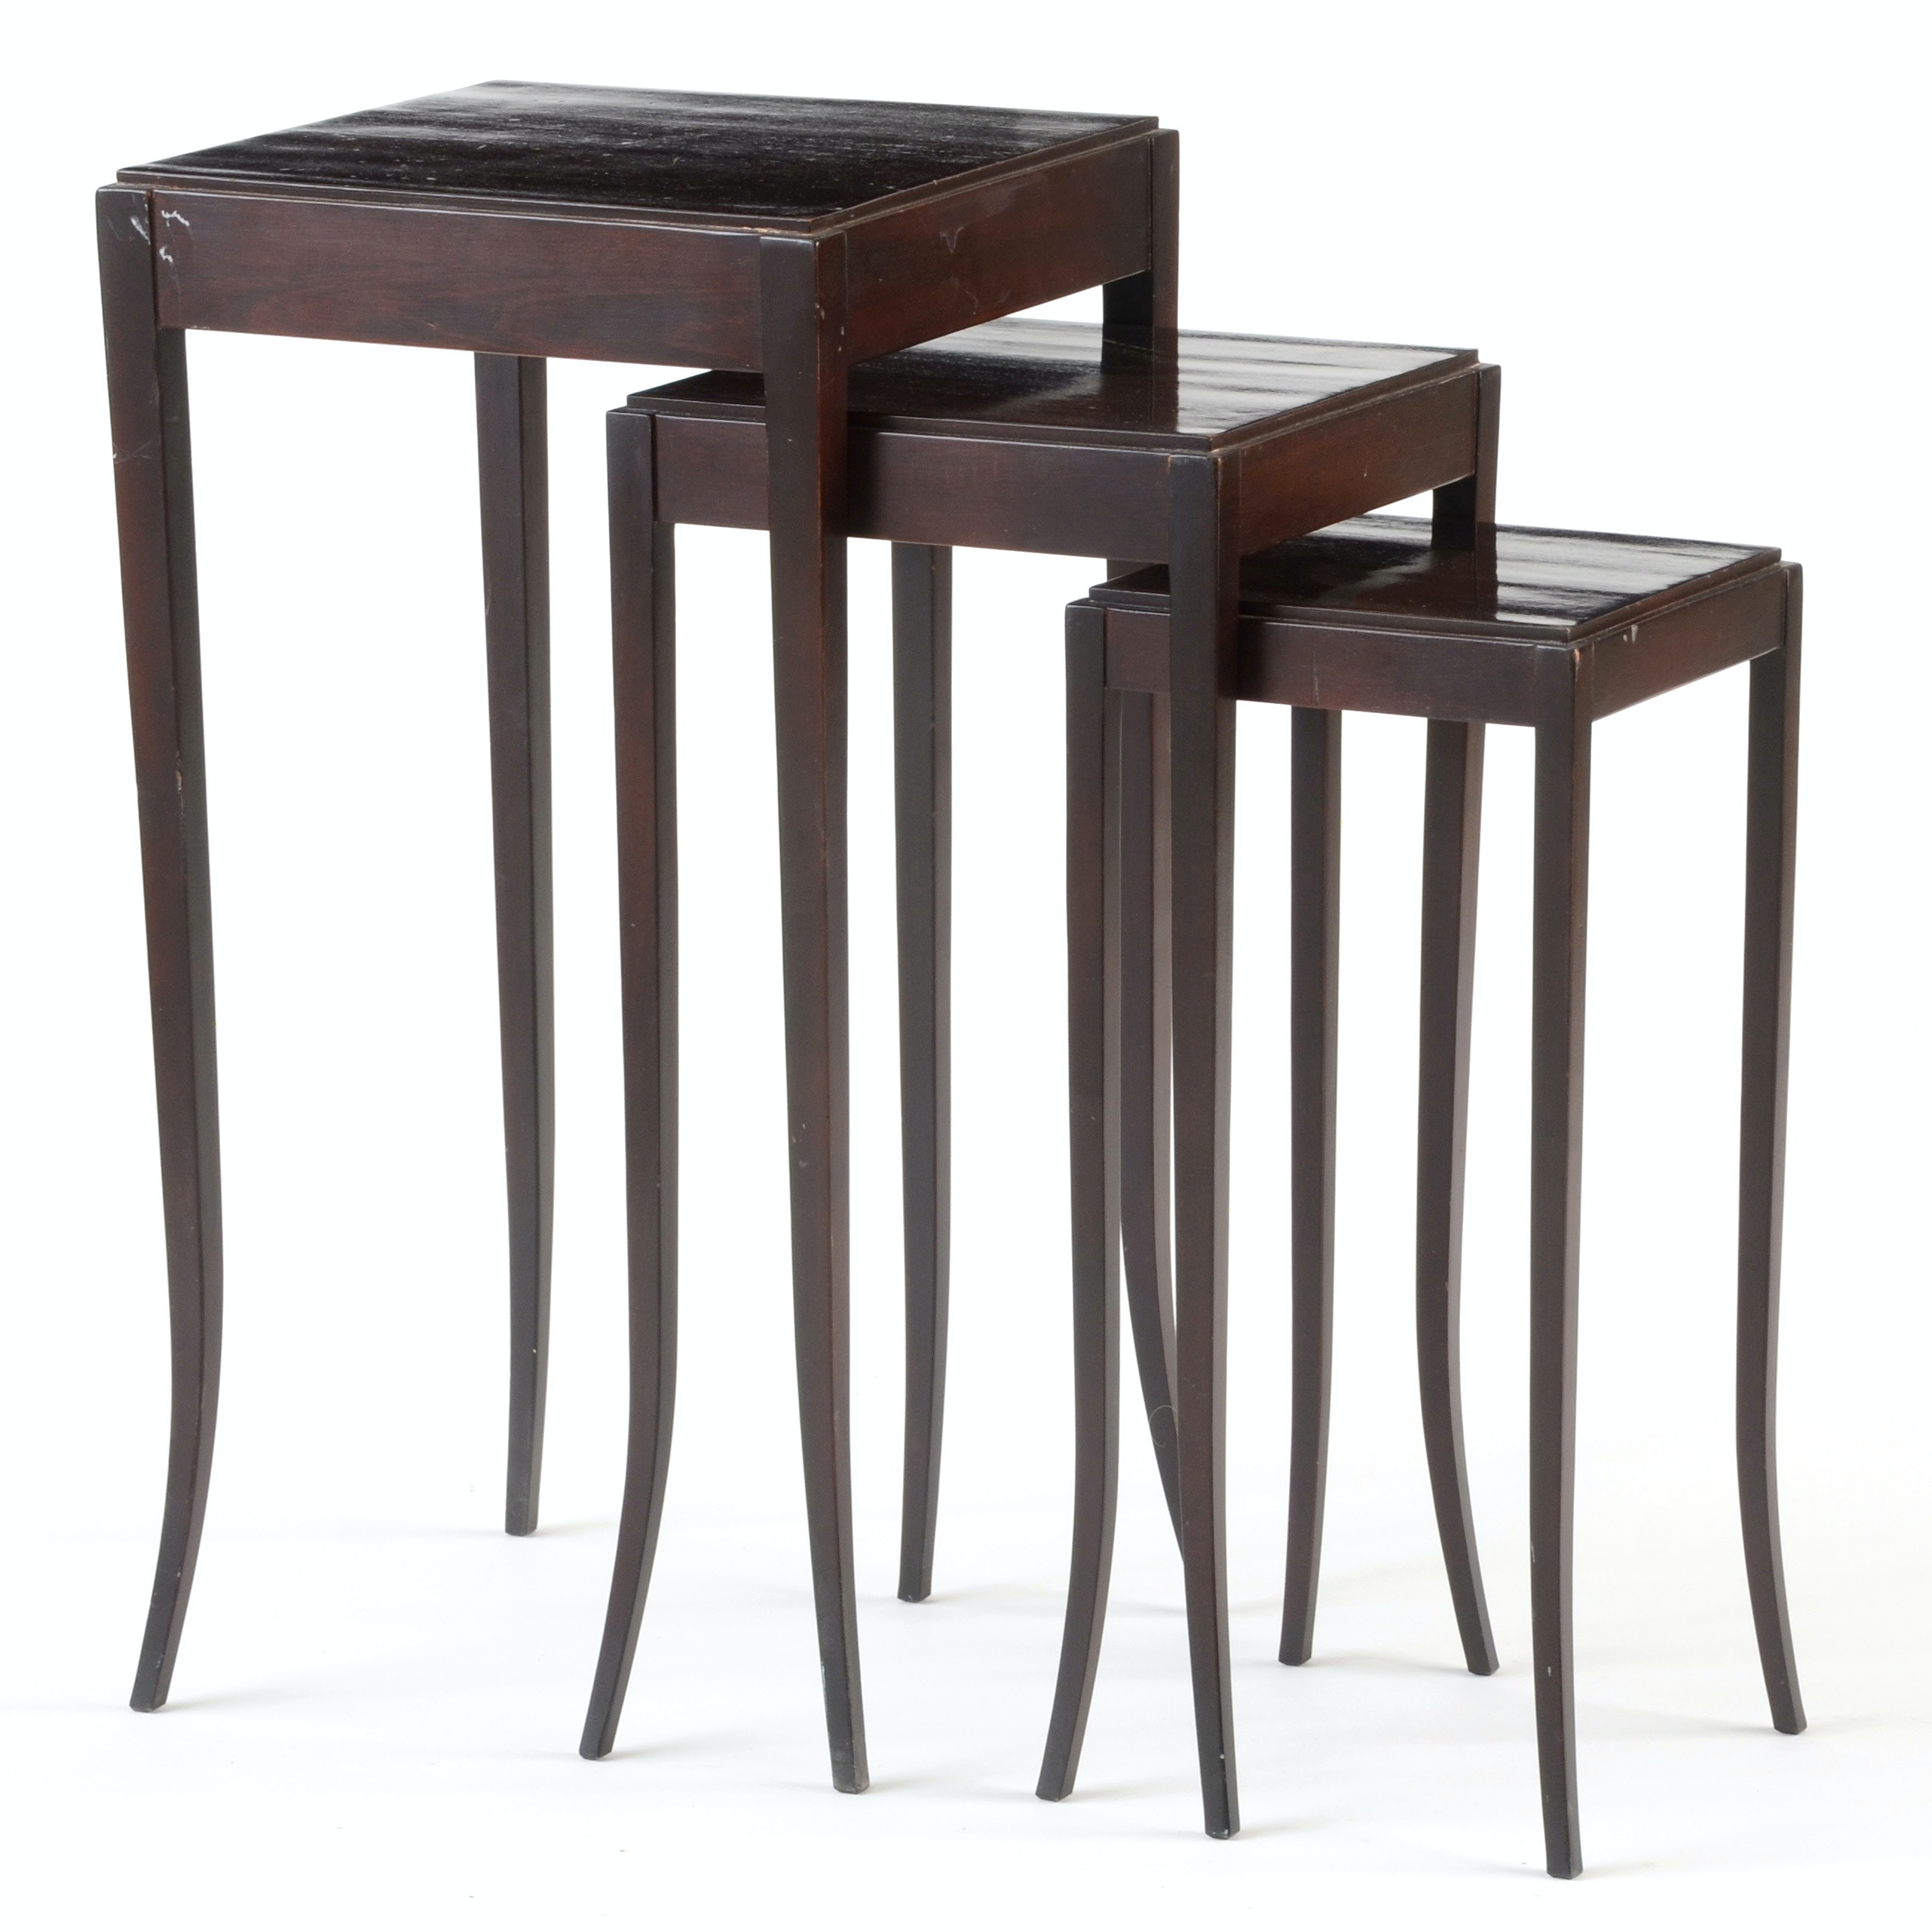 Barbara Barry Nesting Tables for Baker